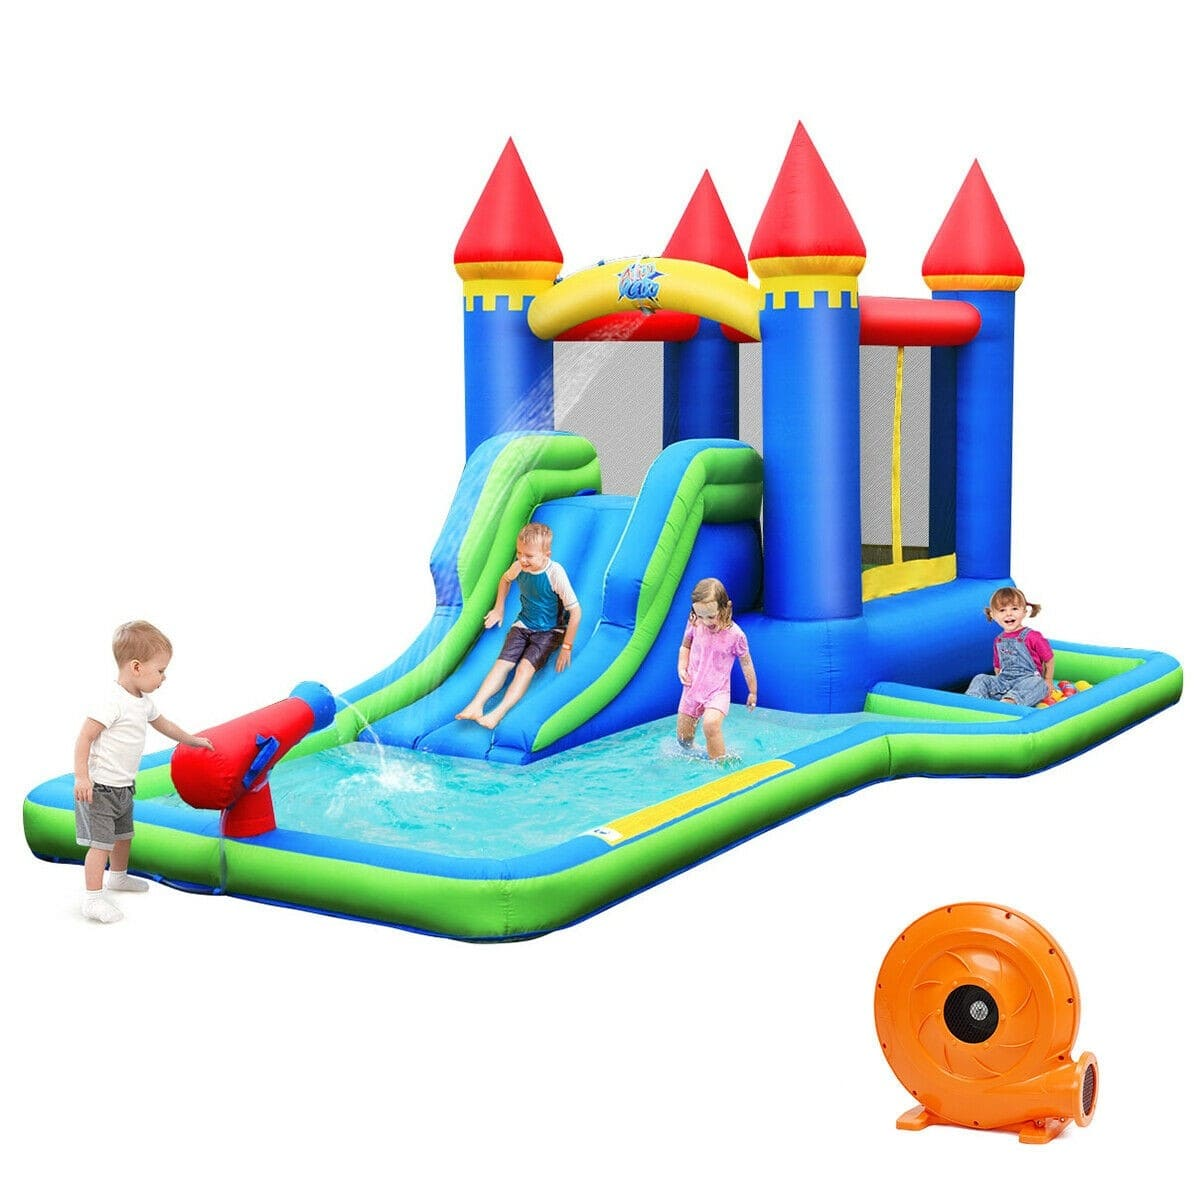 Kids Inflatable Castle Bounce House with Pool and Water Slide - 580W Air Blower Included